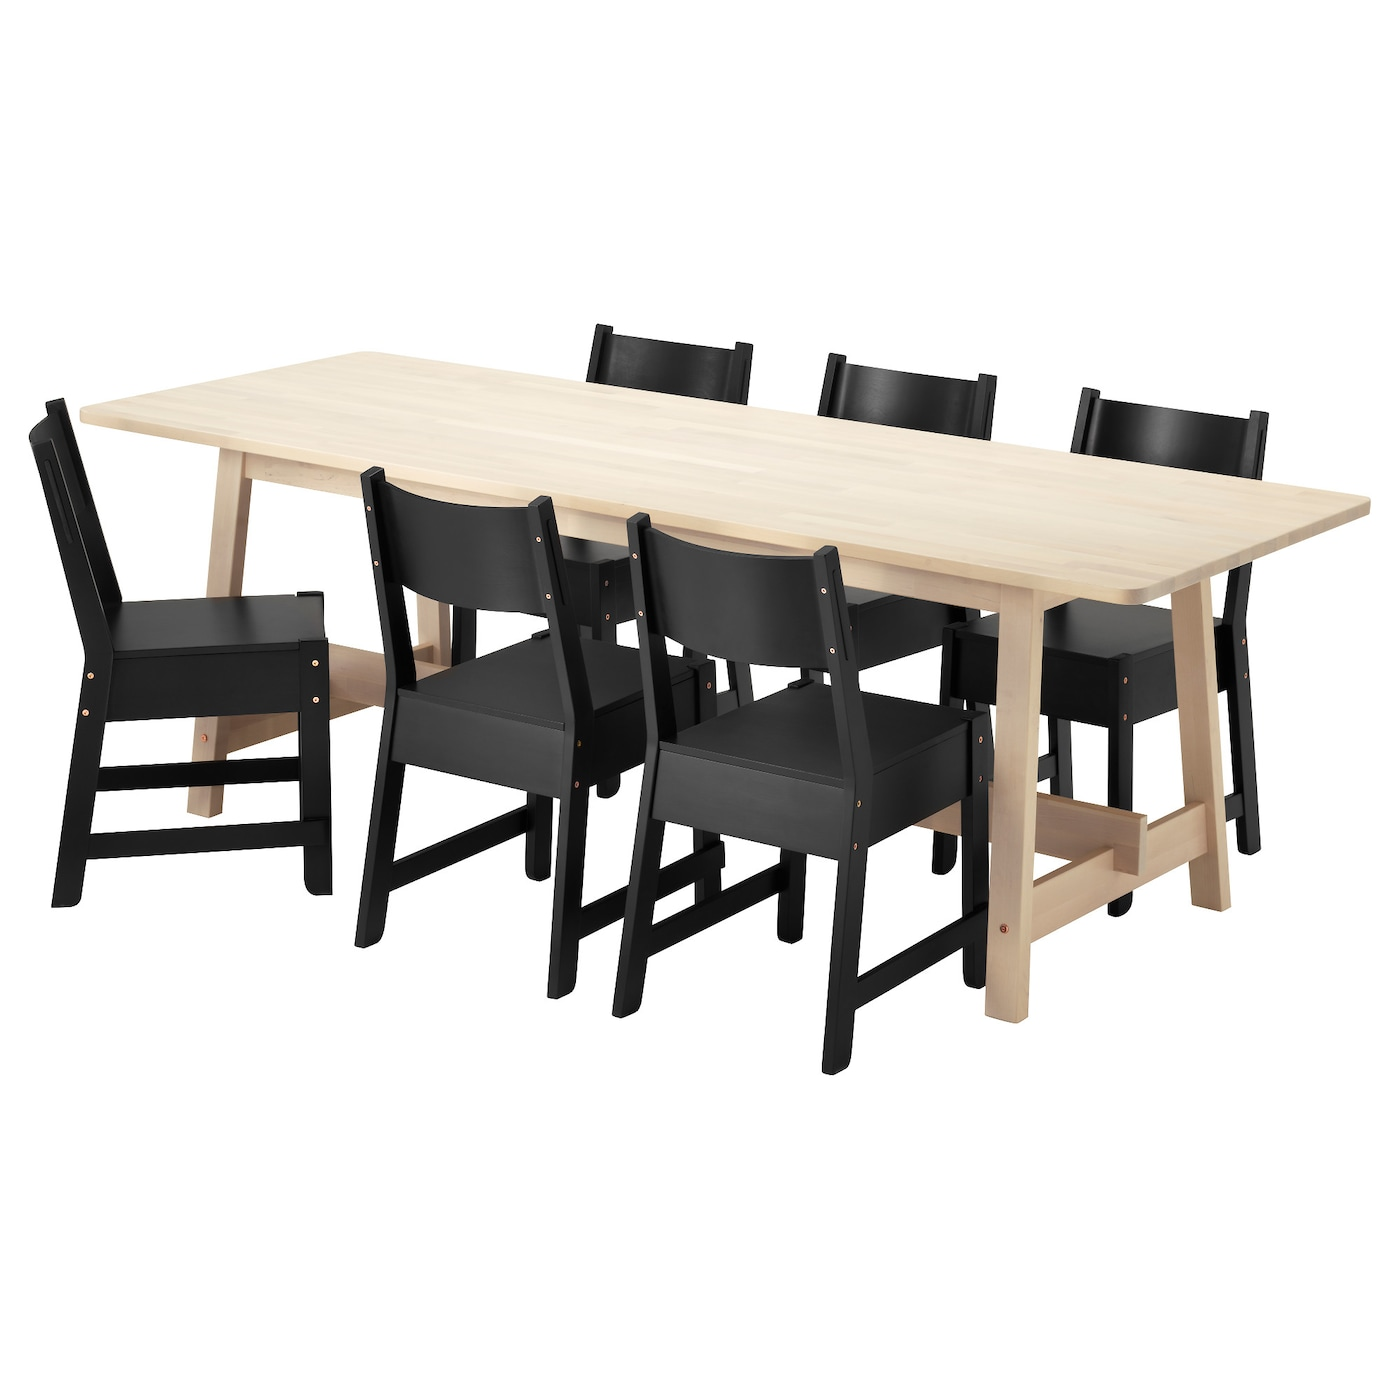 IKEA NORRAKER Table And 6 Chairs